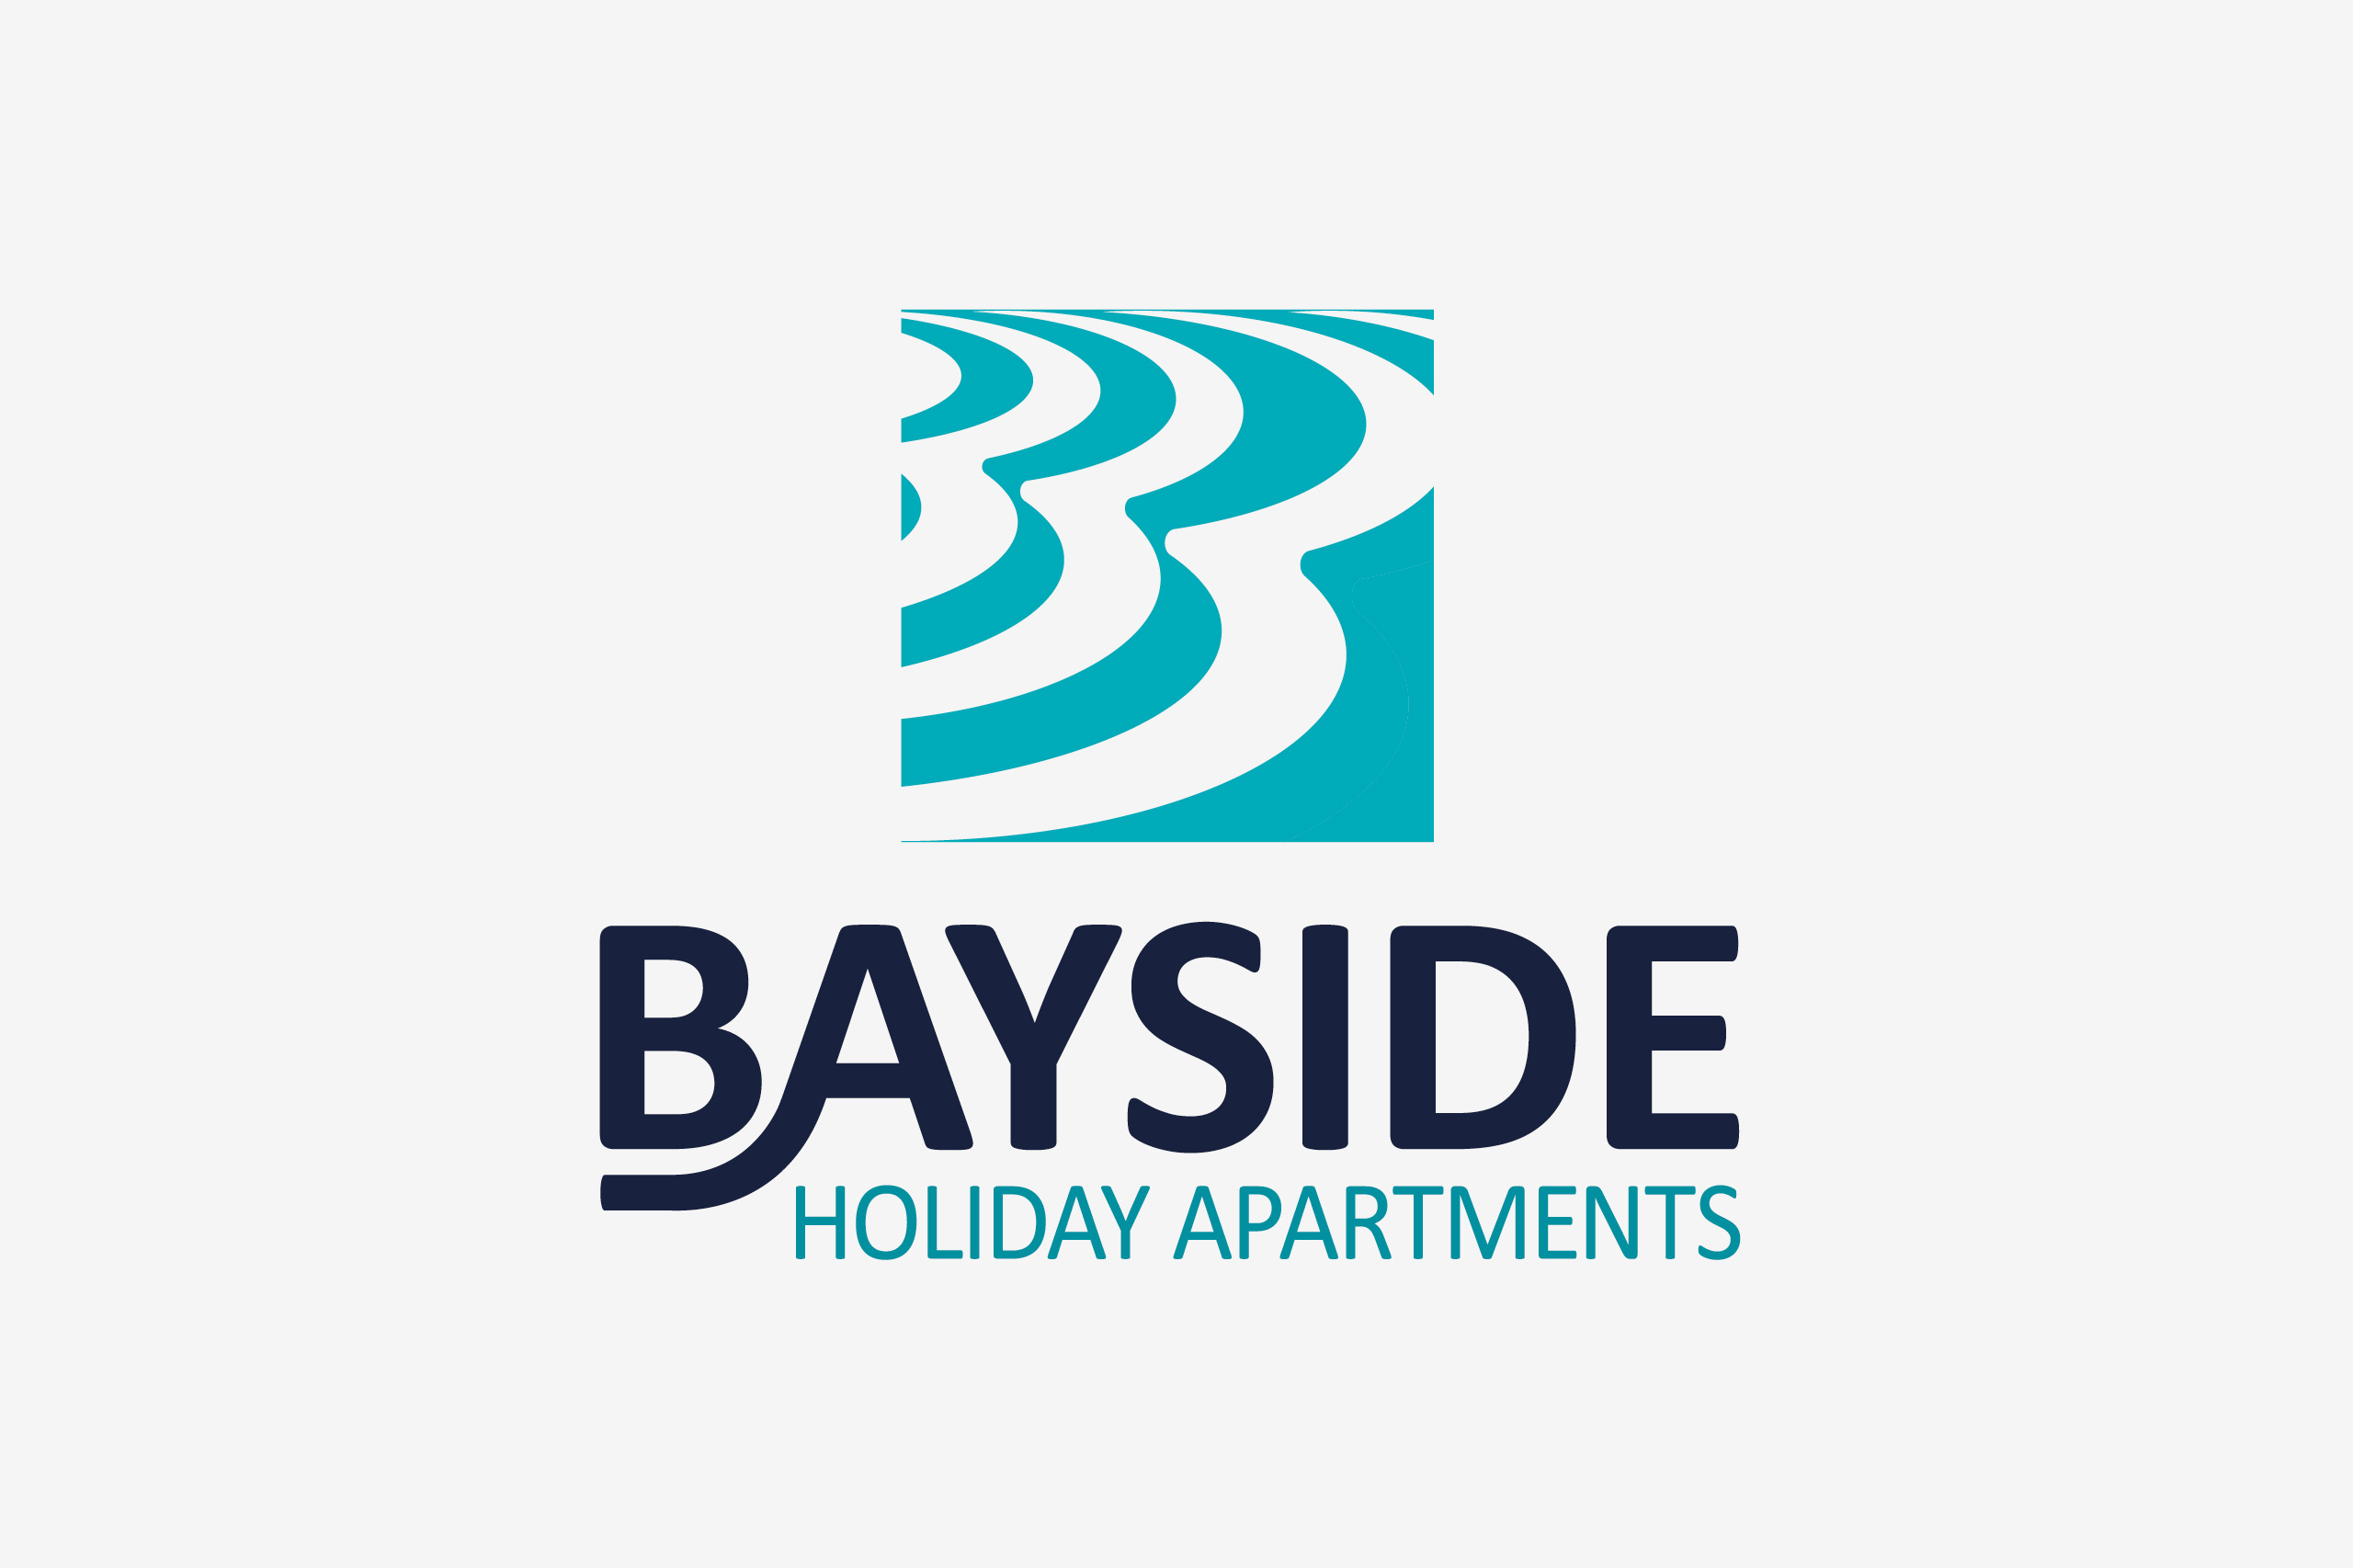 bayside holiday apartments logo maker and co design